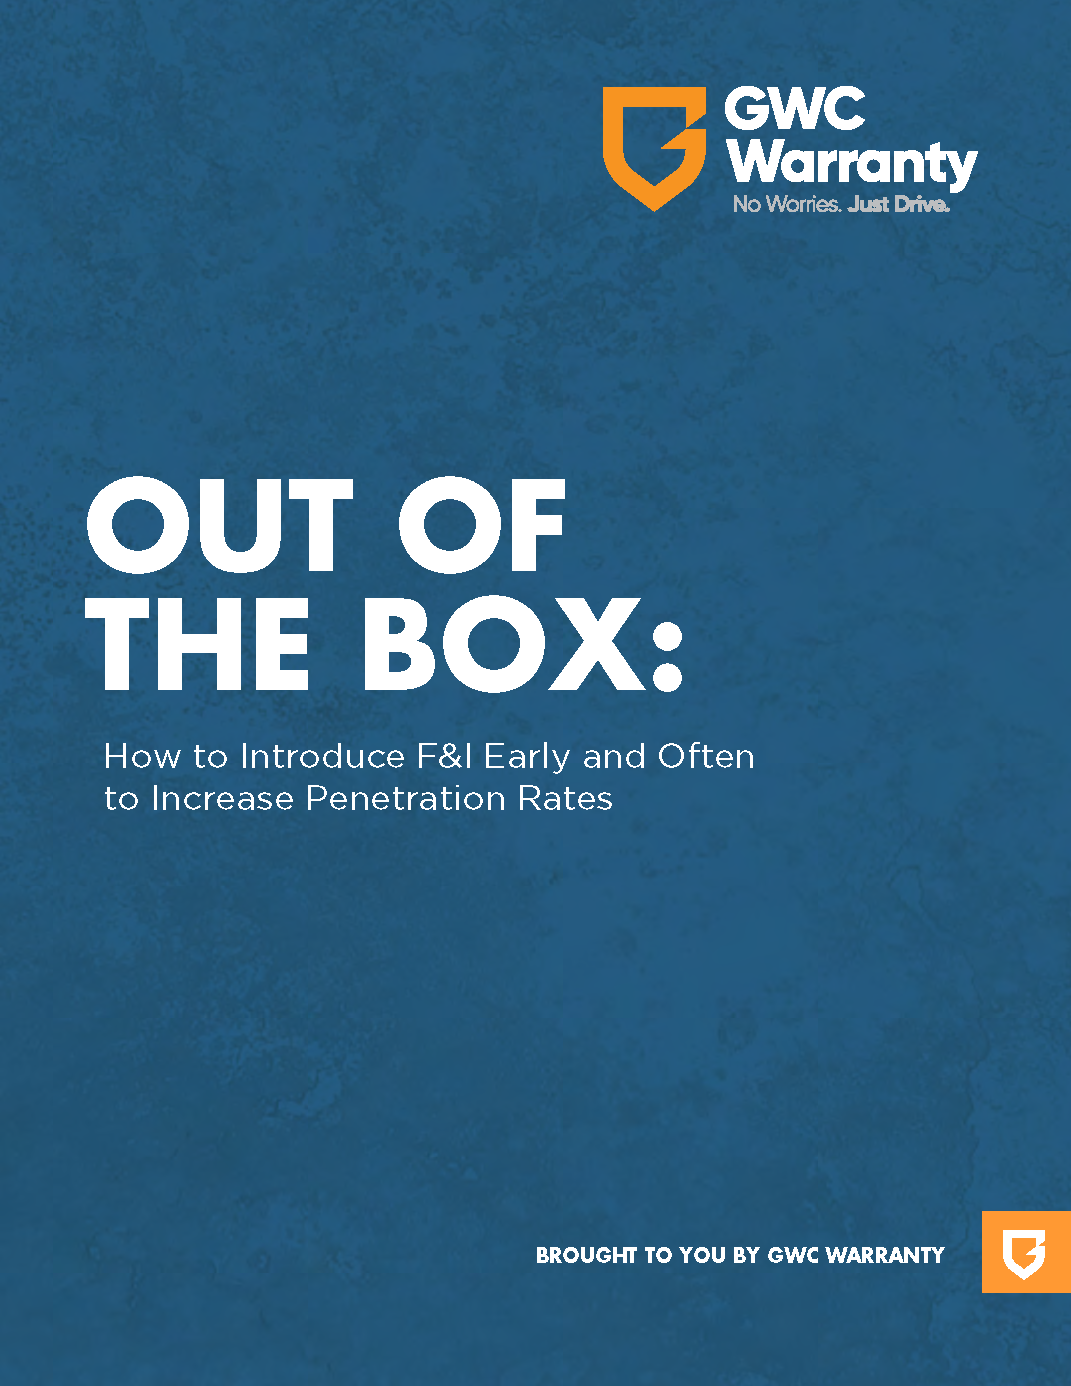 Out of the Box: How to Introduce F&I Early and Often to Increase Penetration Rates